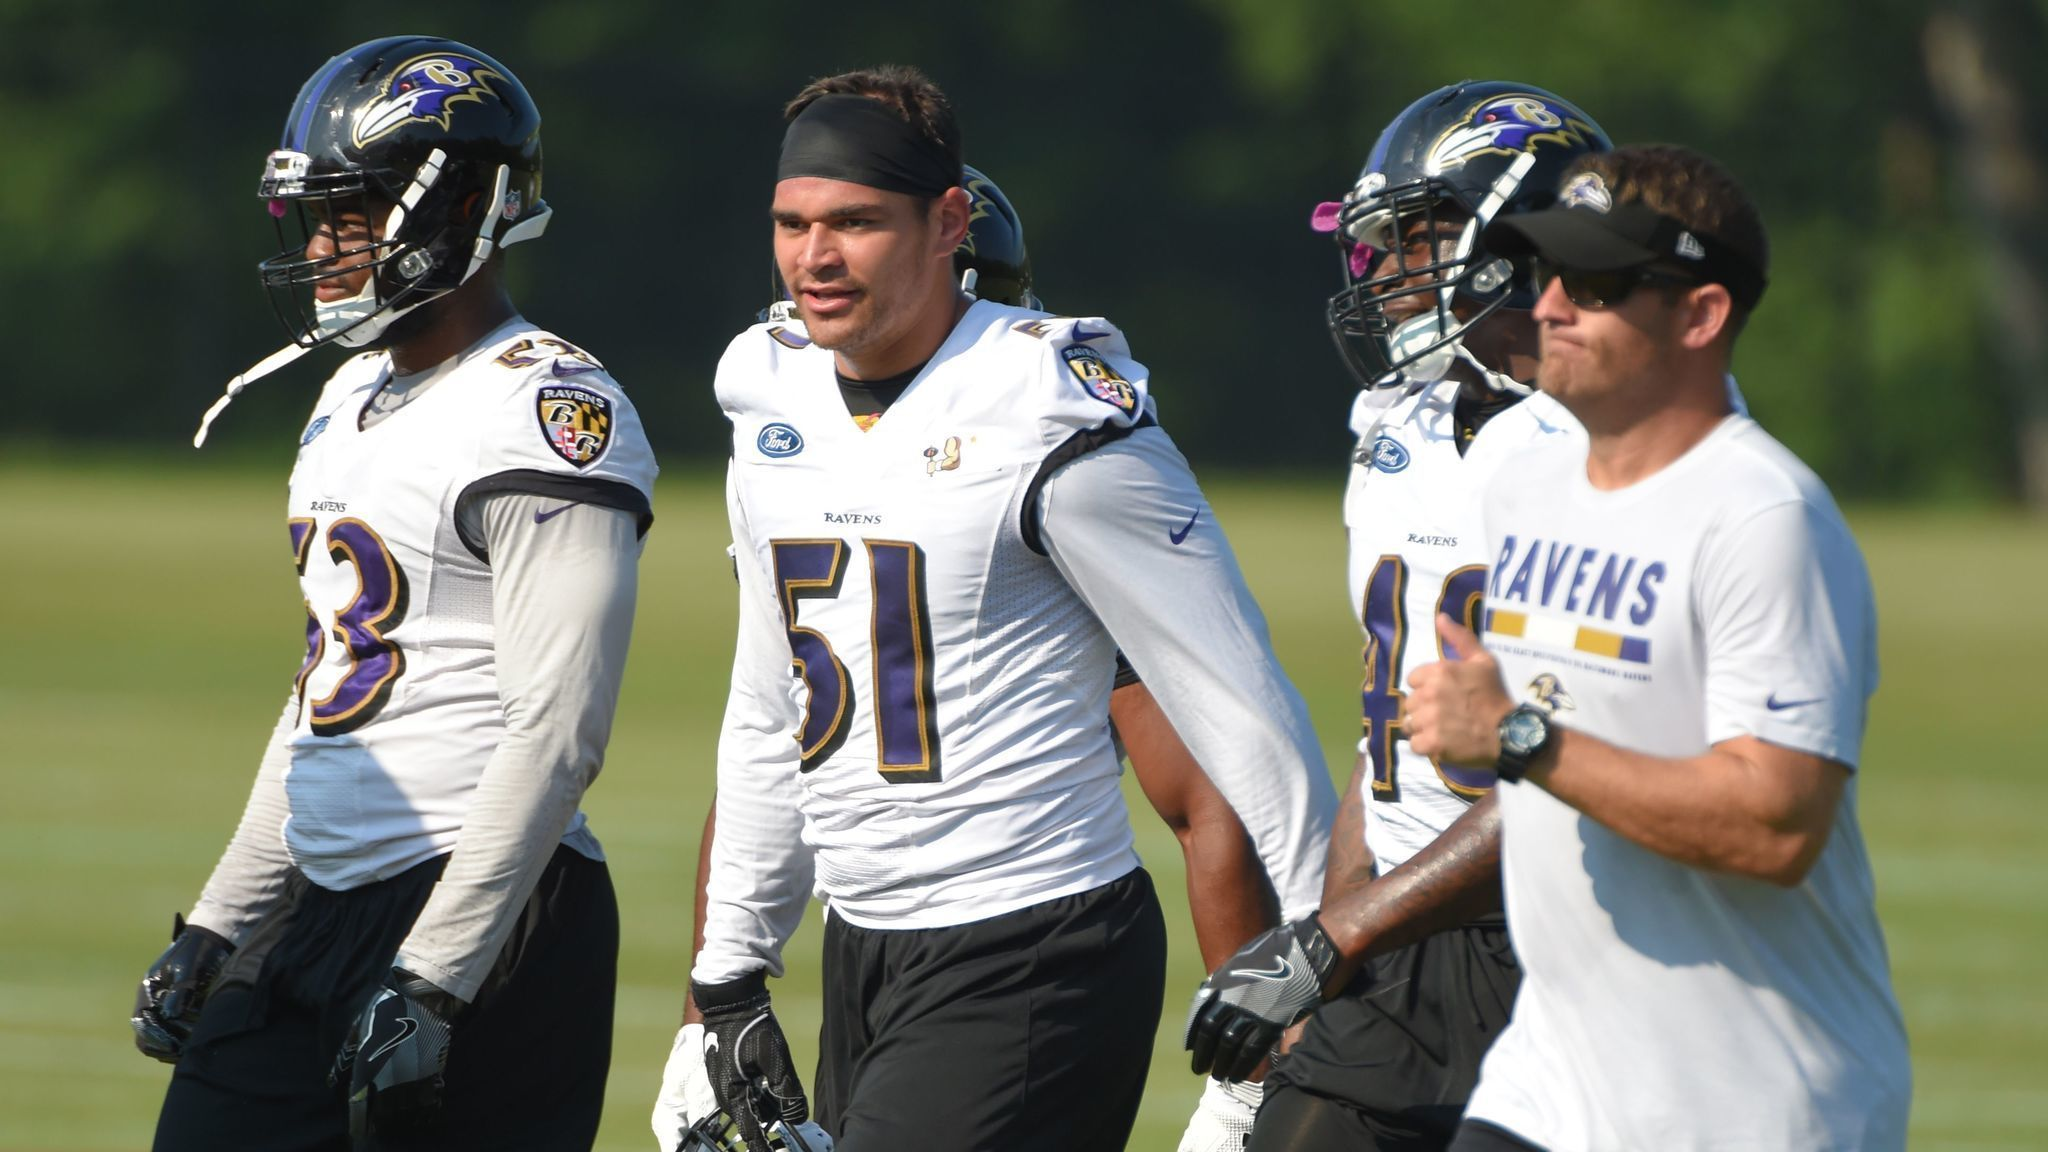 Bs-sp-ravens-linebacker-kamalei-correa-ups-and-downs-20170819